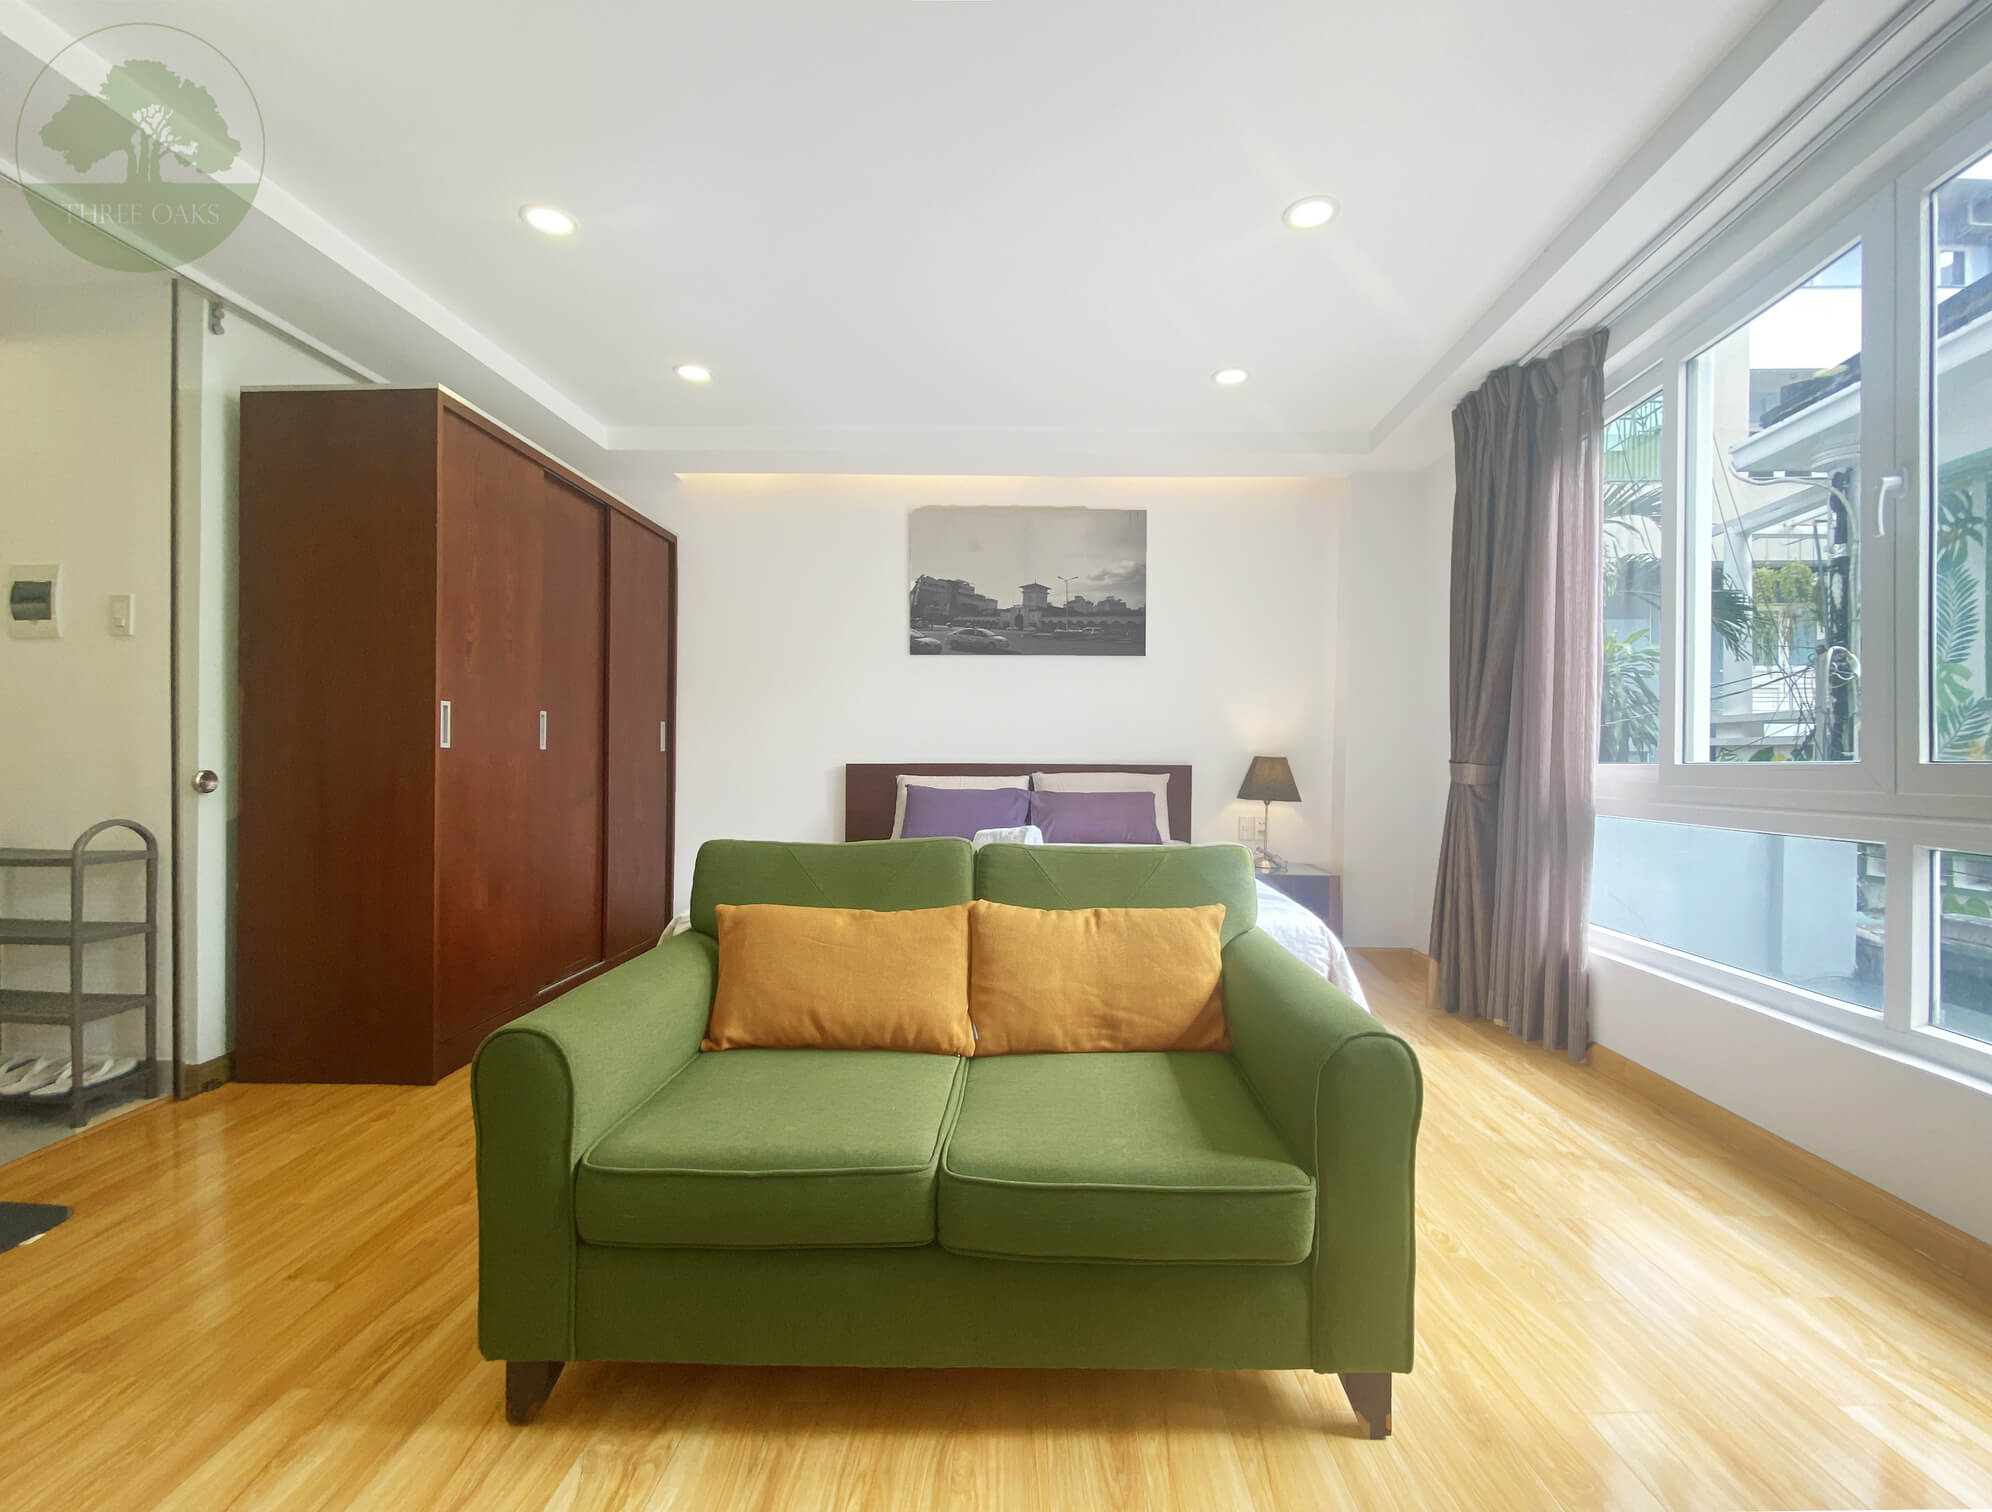 Housing-Apartments-for-rent-in-Saigon-tybe-a-1a-15